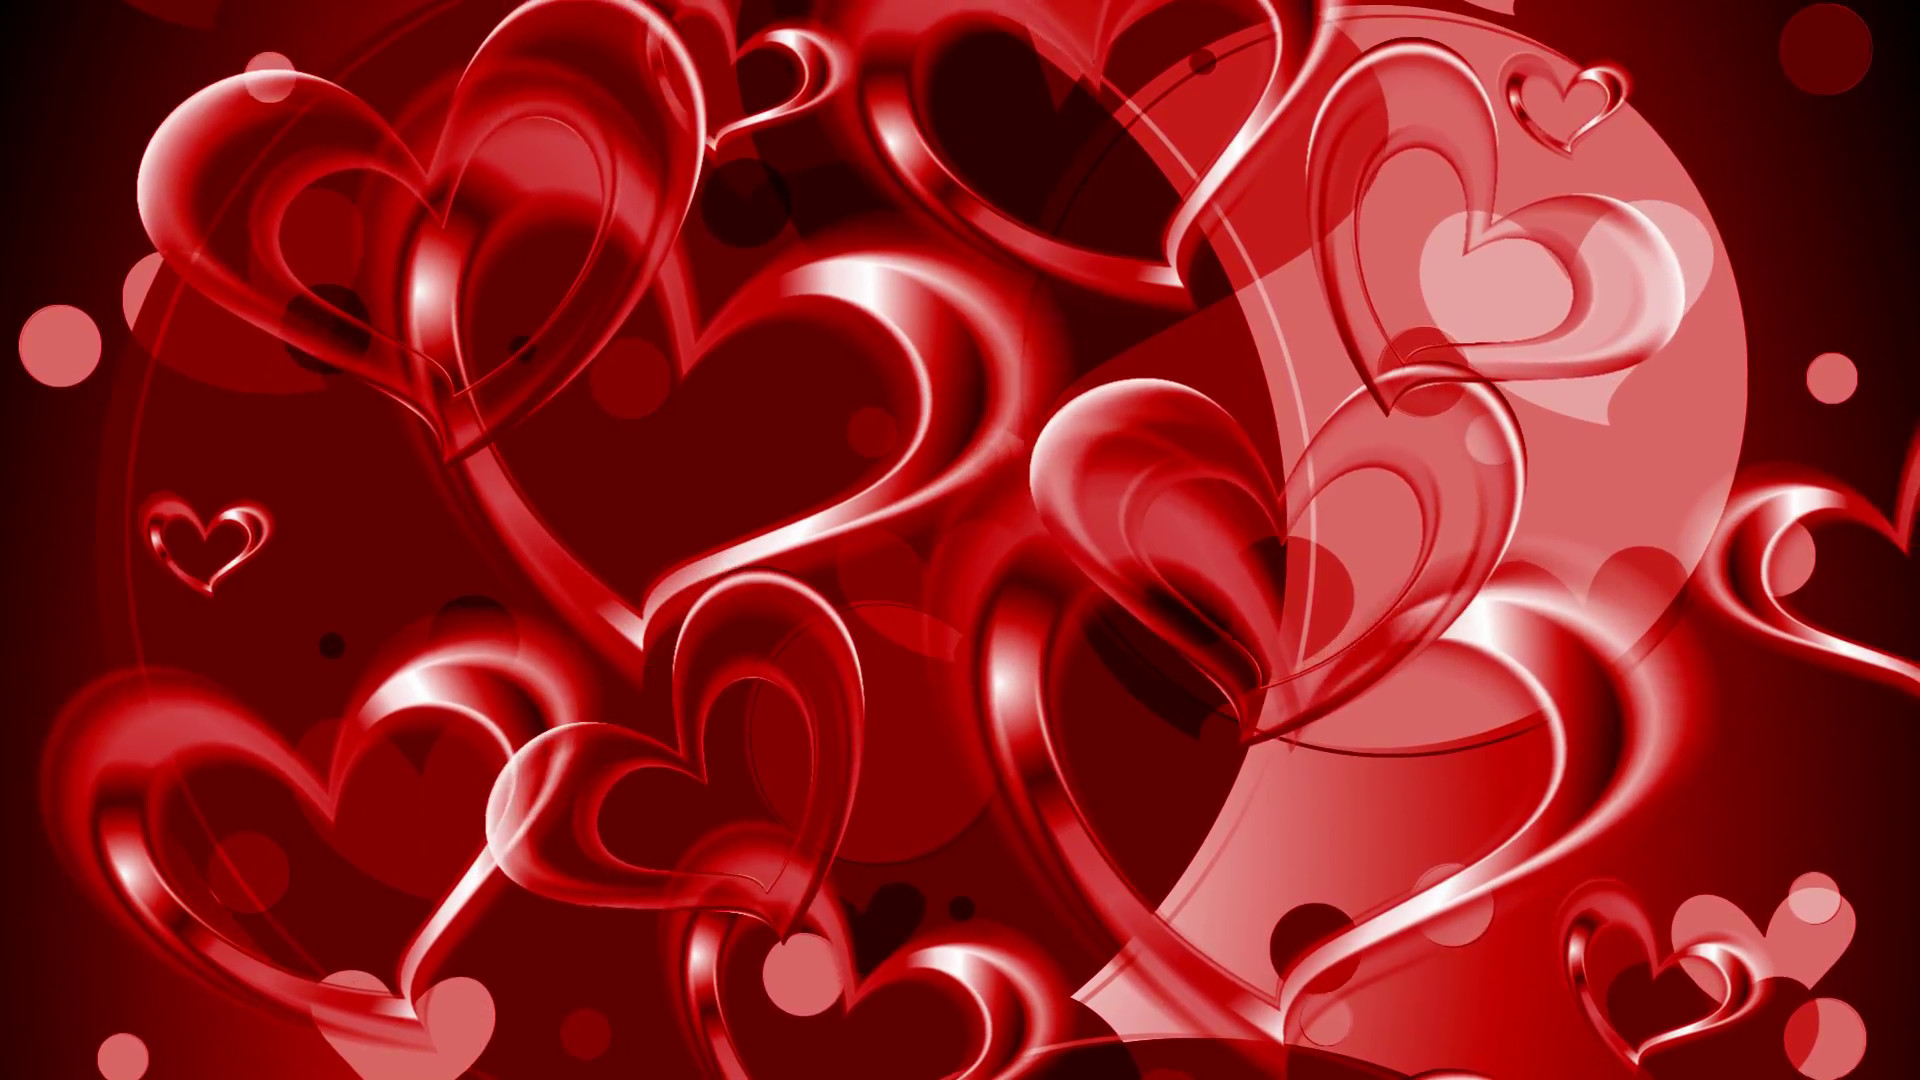 red hearts background 183��